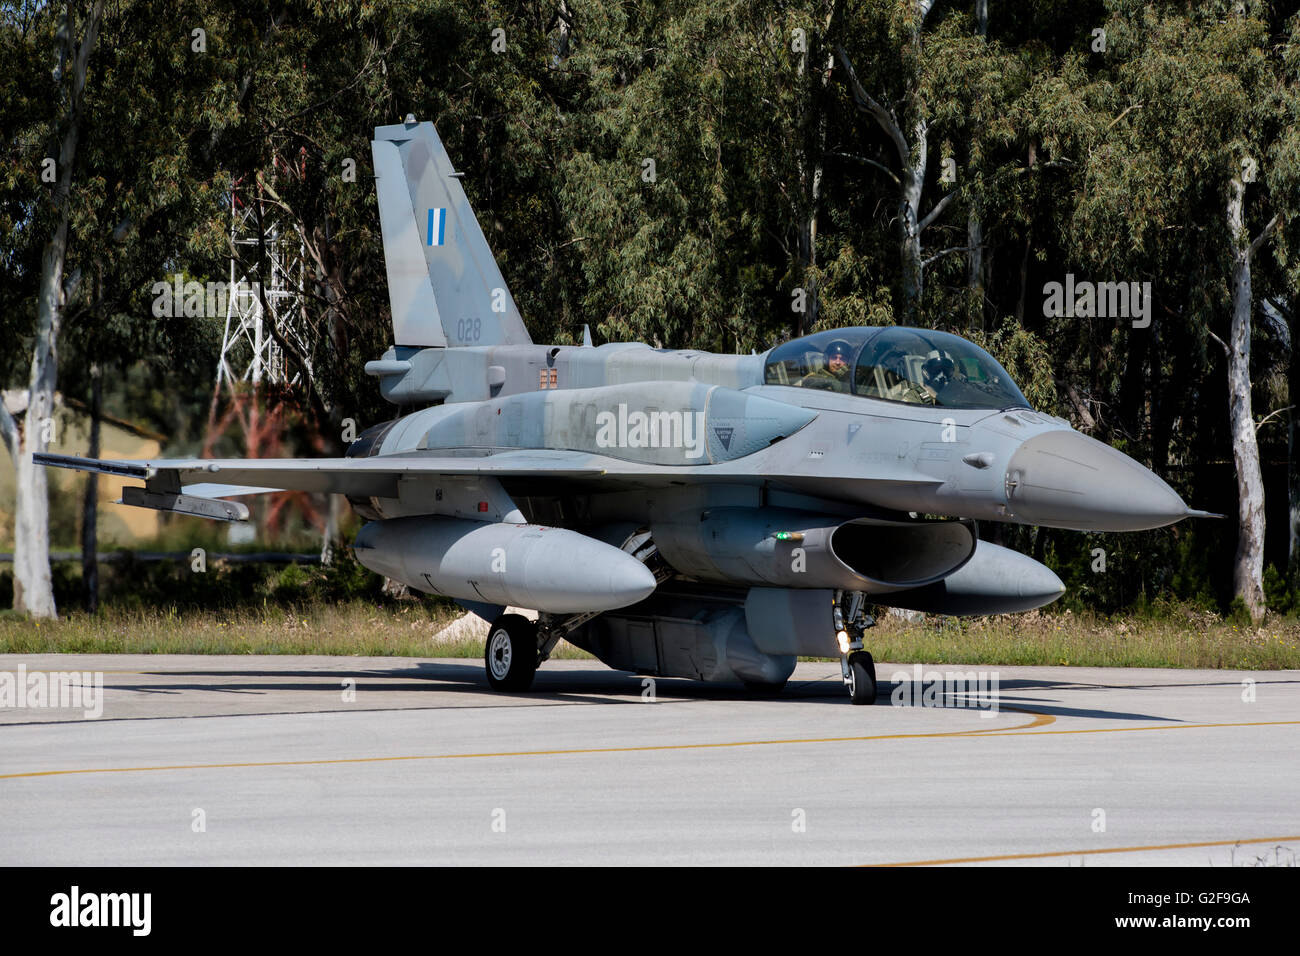 Hellenic Air Force F-16D Block 52+ with a DB-110 reconnaissance pod, Araxos, Greece. - Stock Image